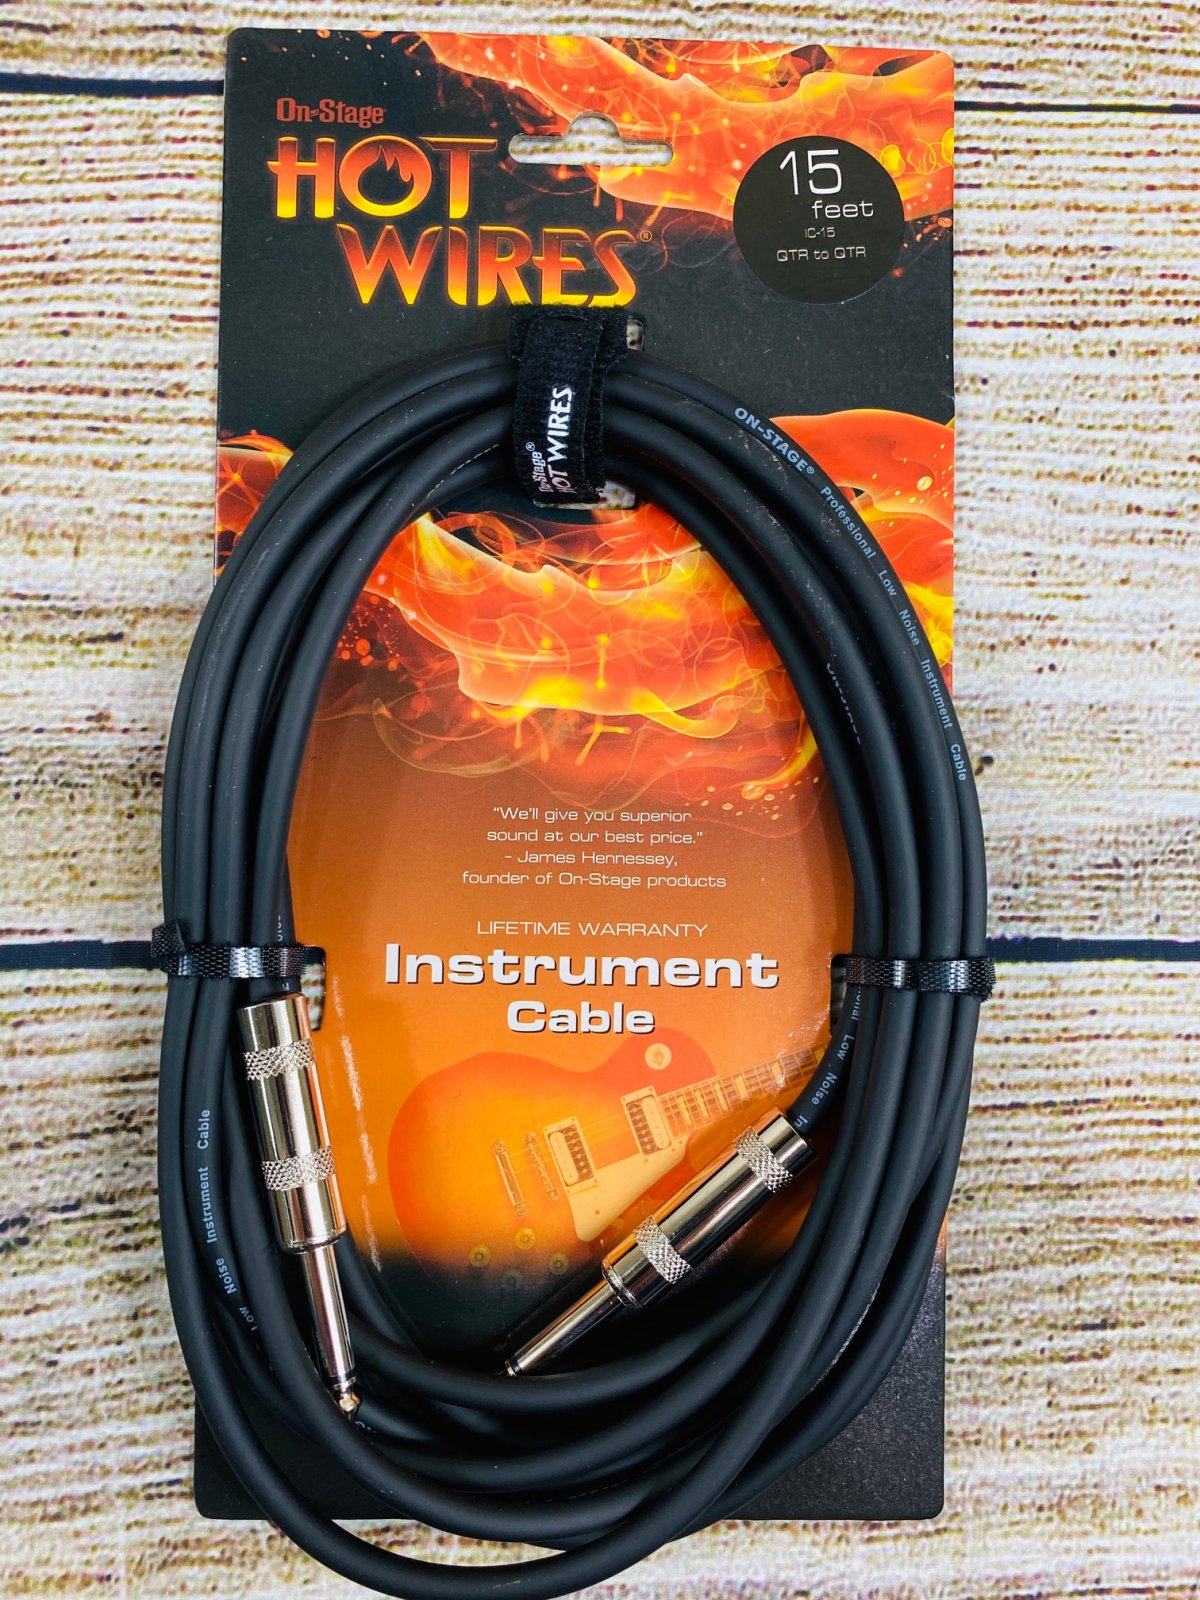 On-Stage Hot Wires 1/4 Guitar Instrument Cable, 15 Feet